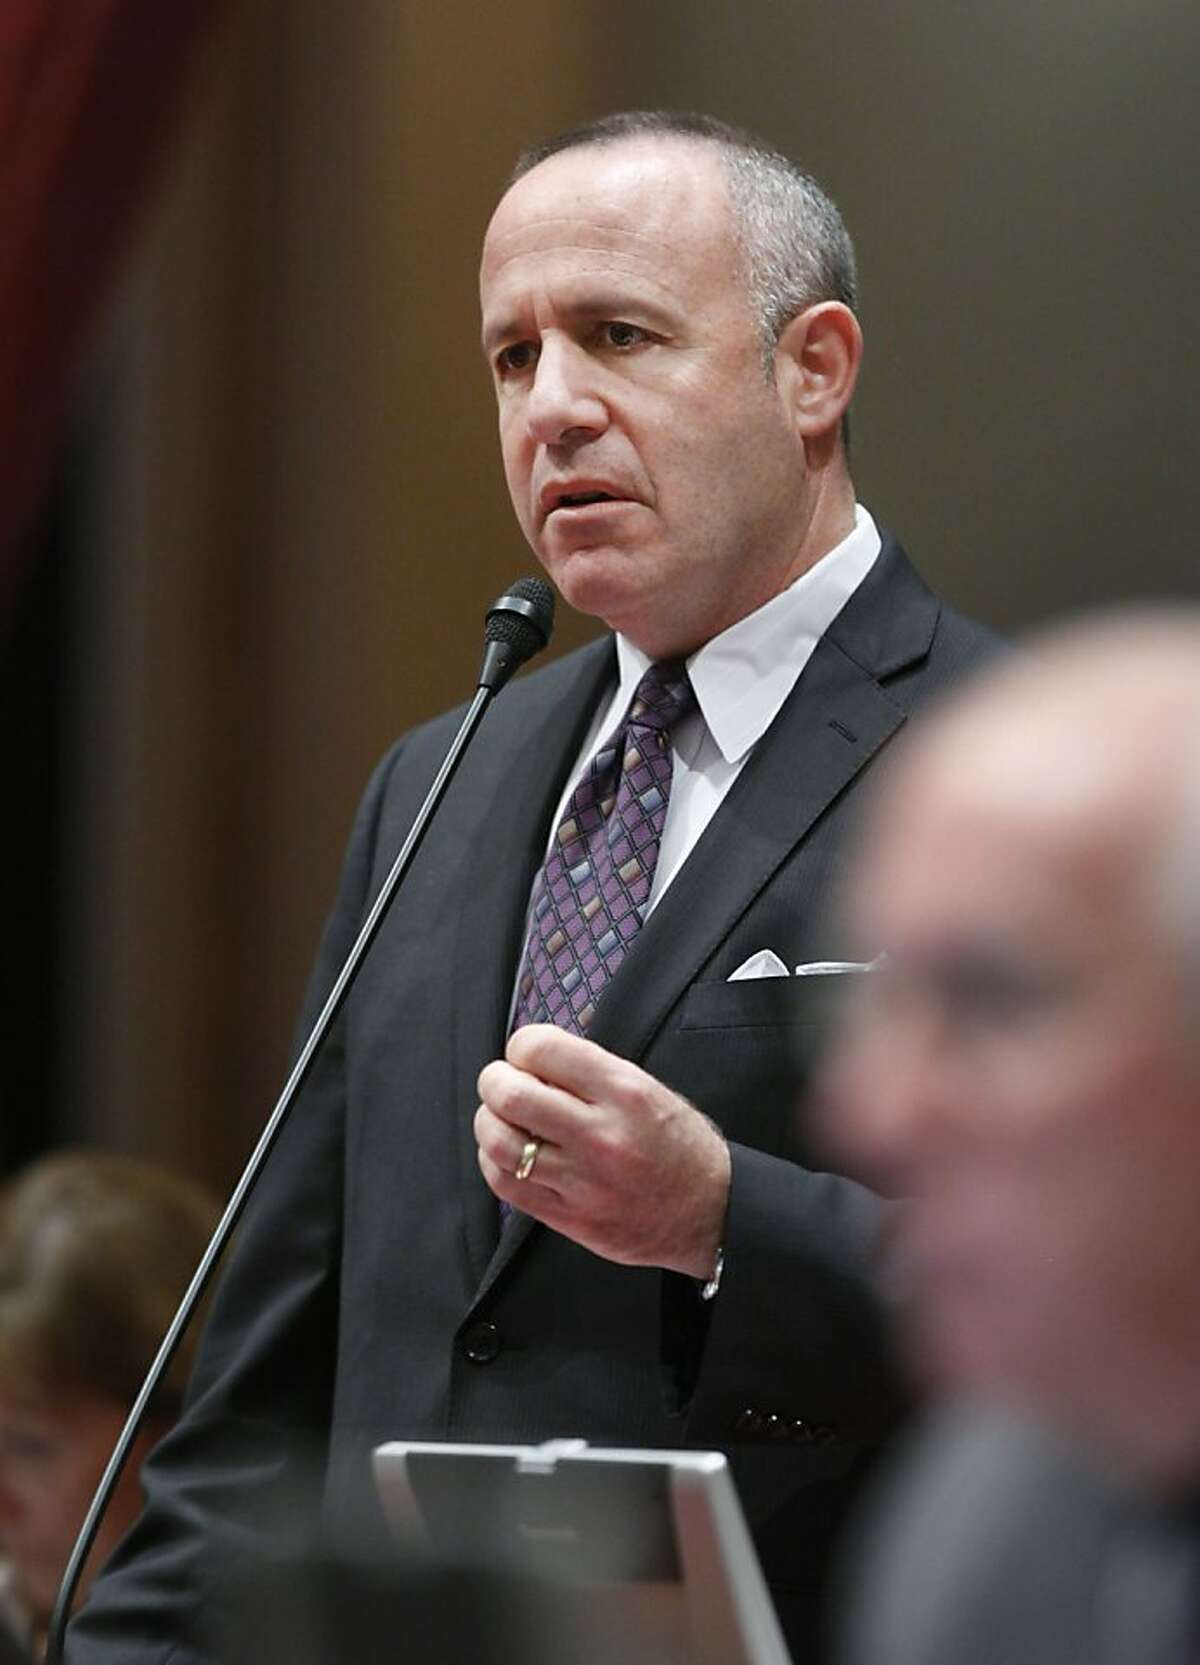 State Senate President Pro Tem Darrell Steinberg, D-Sacramento, urged lawmakers to approve his school testing bill at the Senate in Sacramento, Calif., Tuesday, May 29, 2012. The bill, SB1458, which makes schools less reliant on student testing, was approved by a 24-10 vote and sent to the Assembly. A similar bill by Steinberg was vetoed by Gov. Jerry Brown last year. (AP Photo/Rich Pedroncelli)